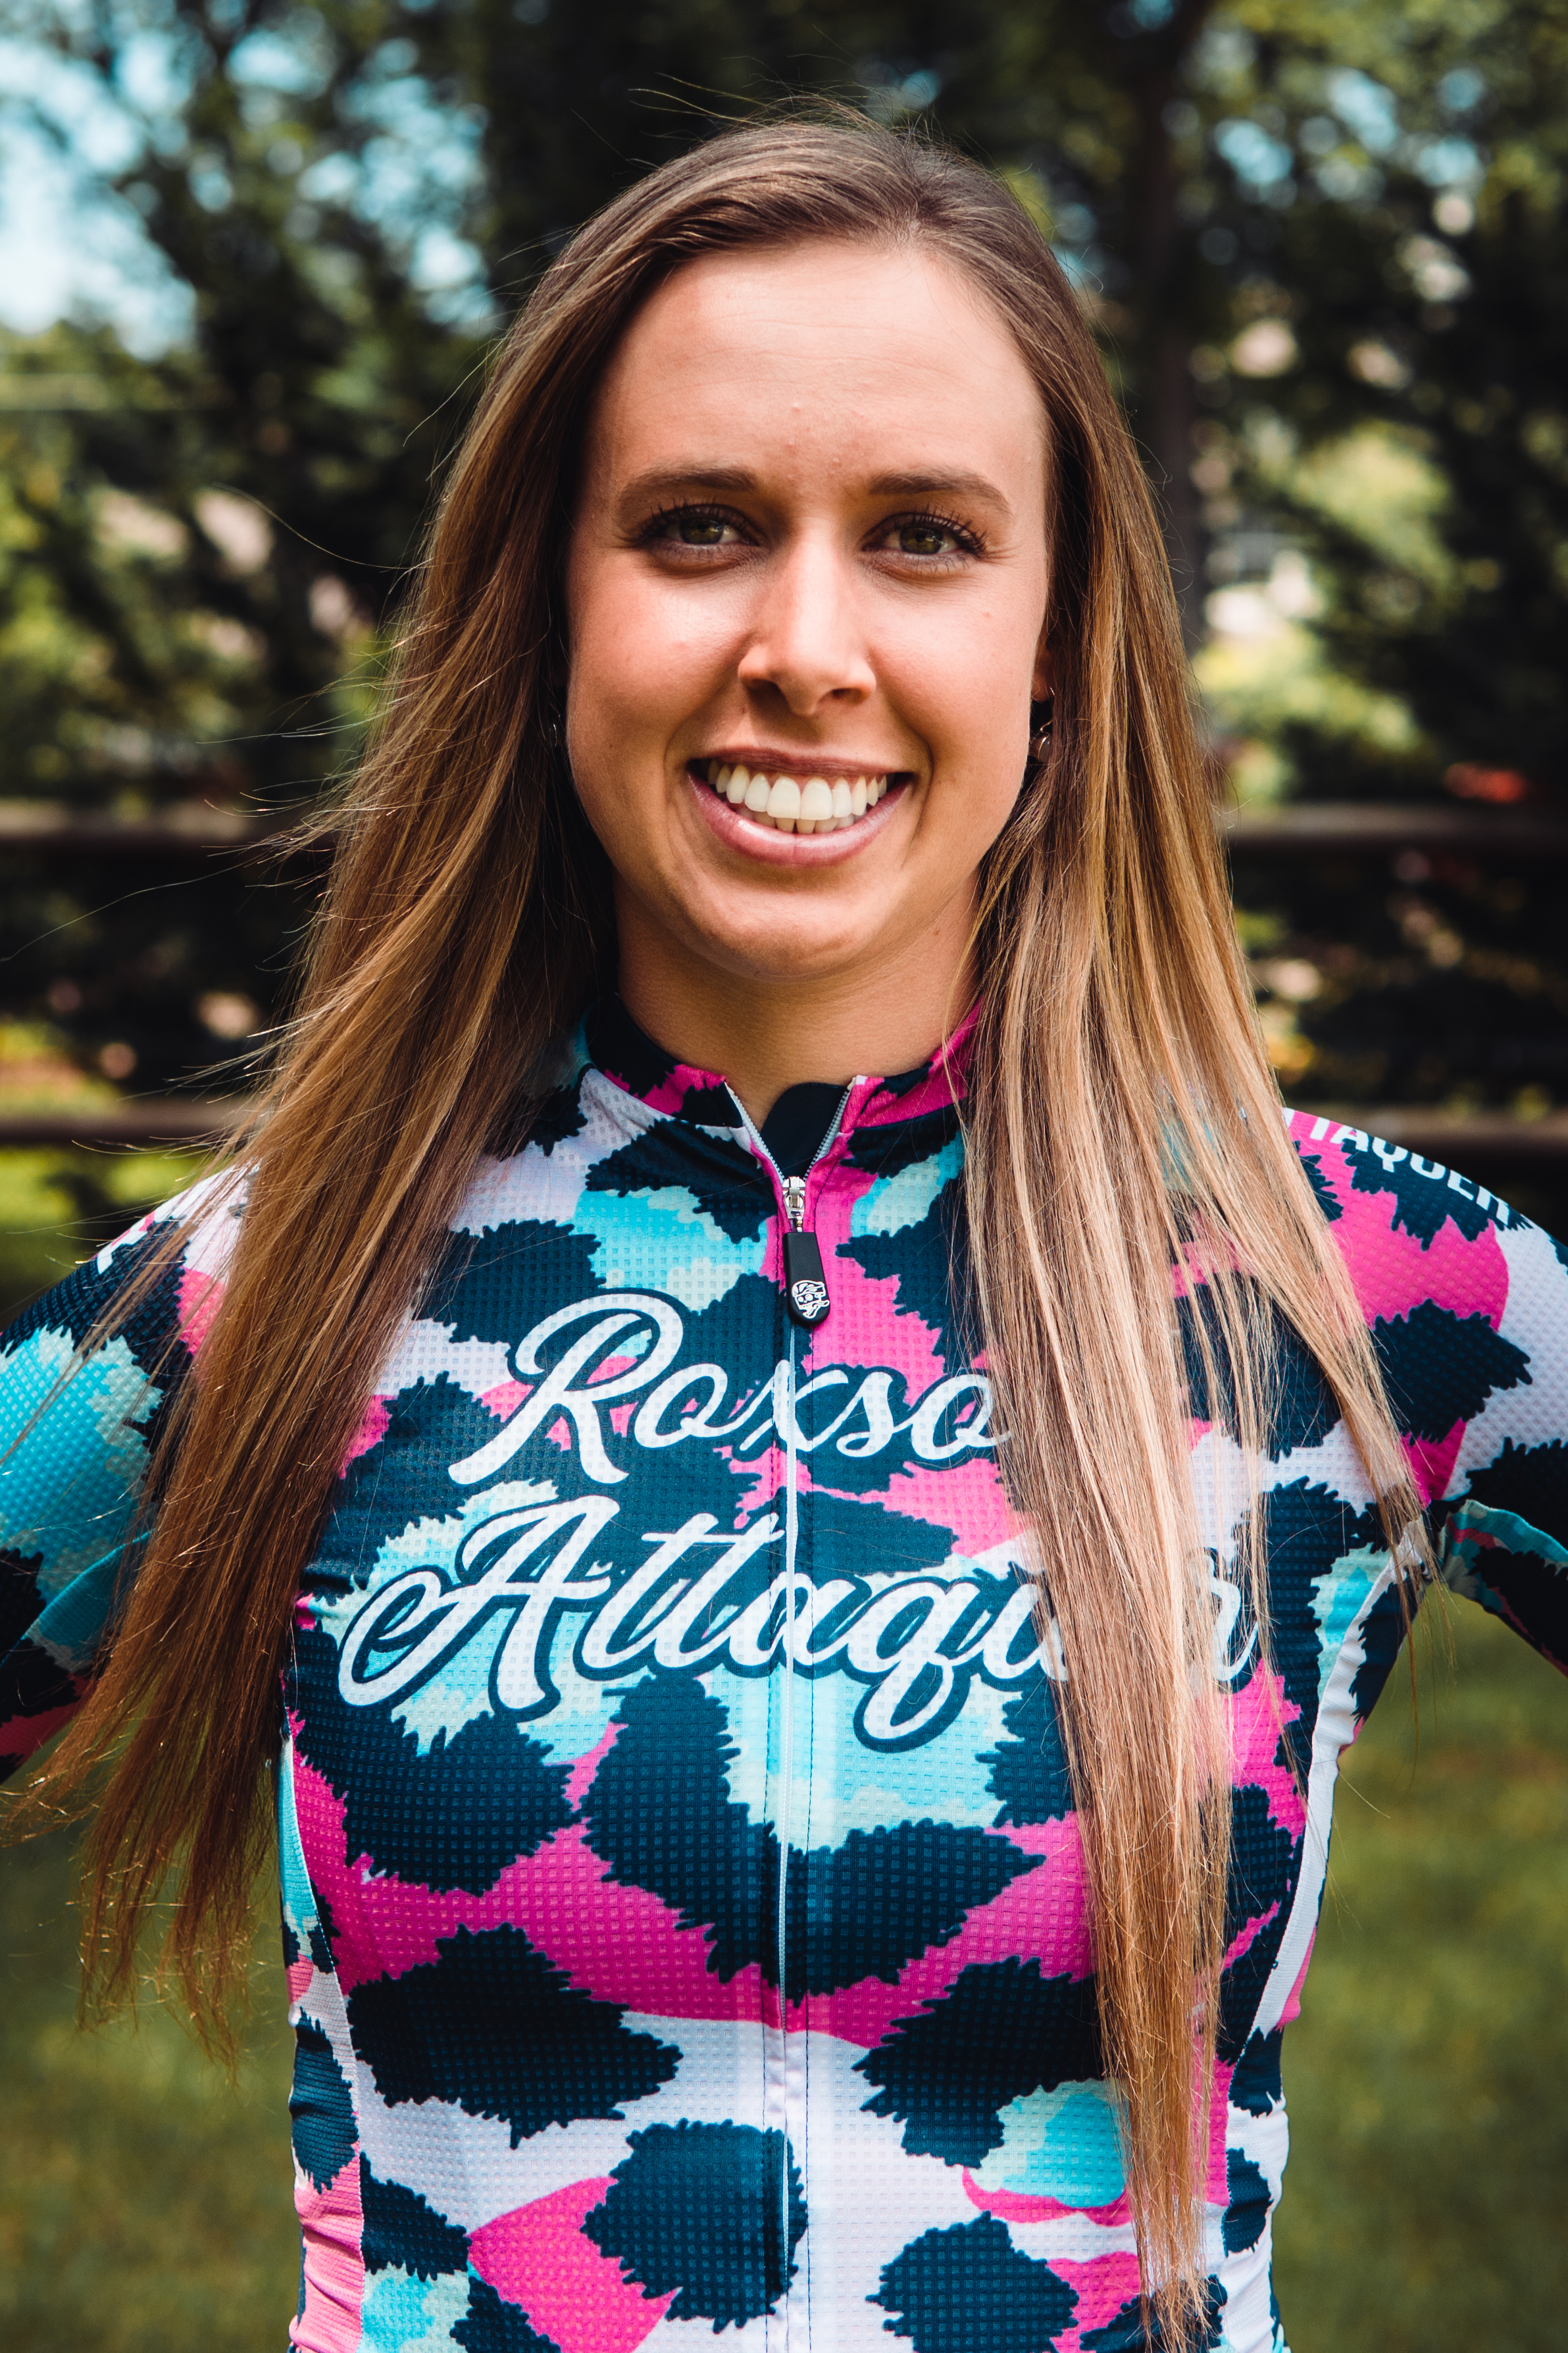 @JosieTalbot_ - Nickname: JoseTop Results: 2nd national madison and omnium 2019, 2nd u23 national road race 2018, Junior world champion - teams pursuit 2014Where did you grow up: Sydney, AustraliaFavourite food: TacosType of rider: Sprinter & Track enduranceFavourite place to ride: Park City, UtahWhat do you hope to achieve cycling this year: Part of the Australian Track Team